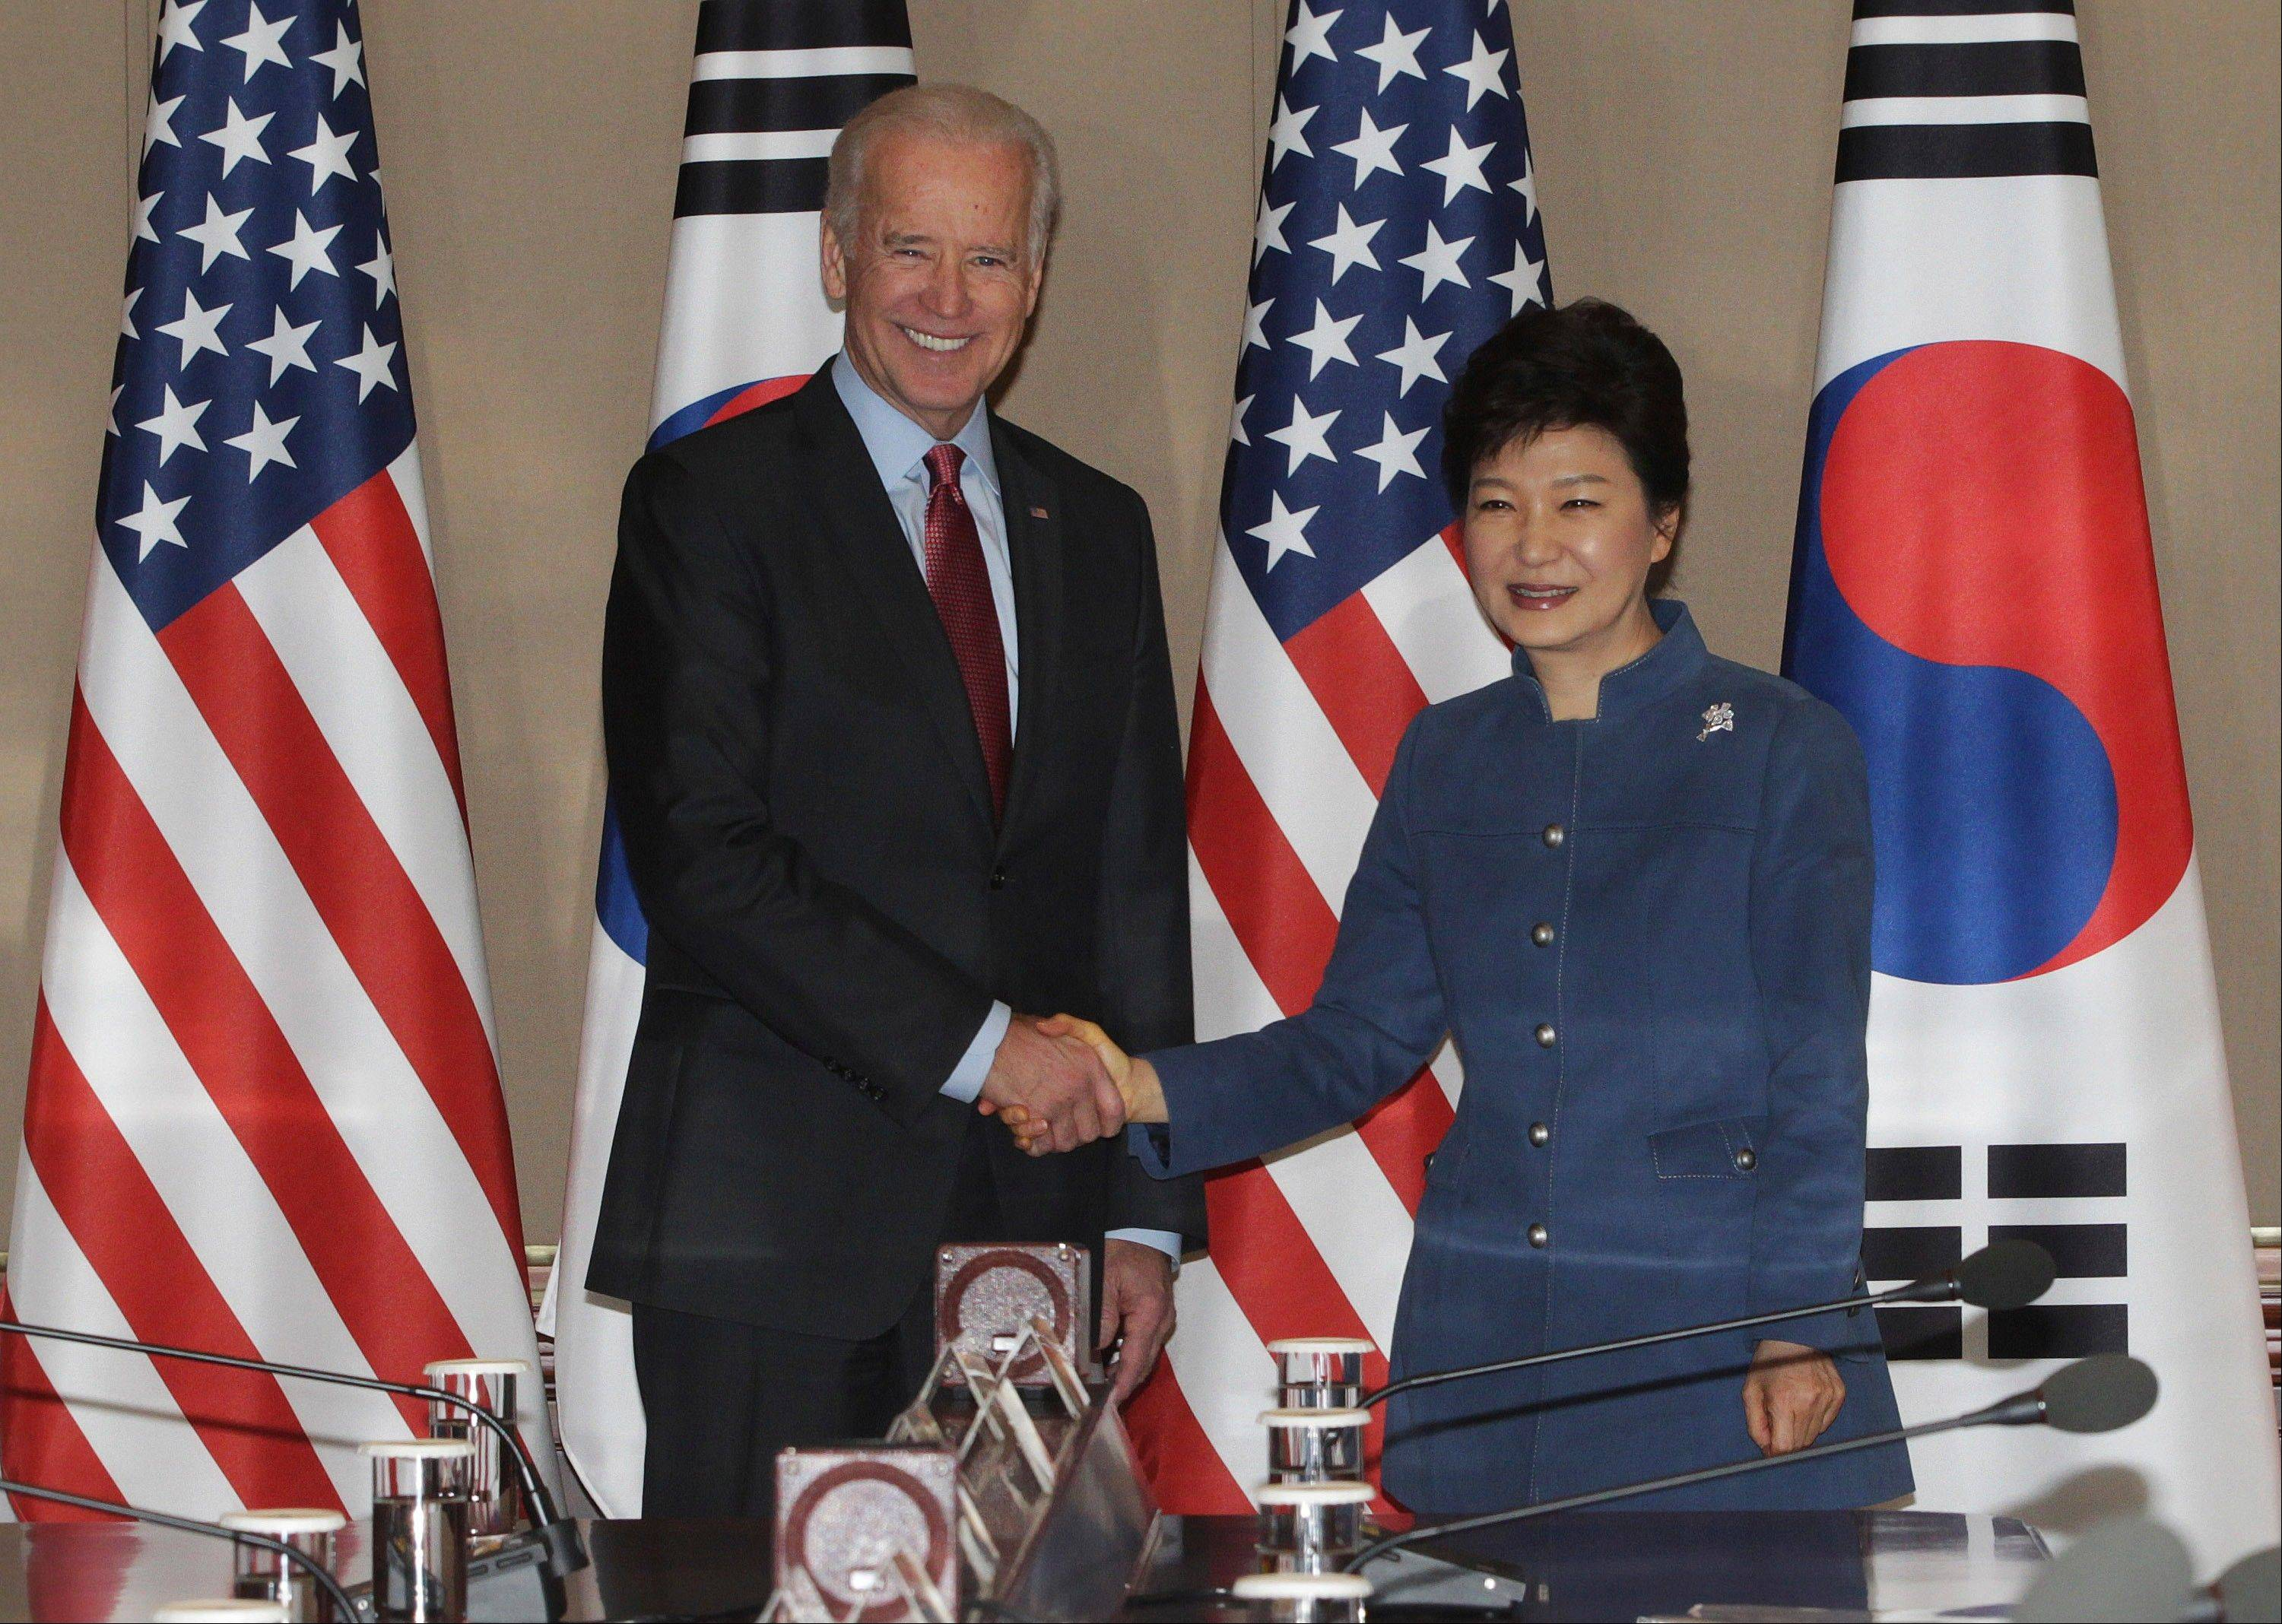 South Korean President Park Geun-hye, right, shakes hands with U.S. Vice President Joe Biden before their meeting at the presidential Blue House in Seoul, South Korea, Friday.